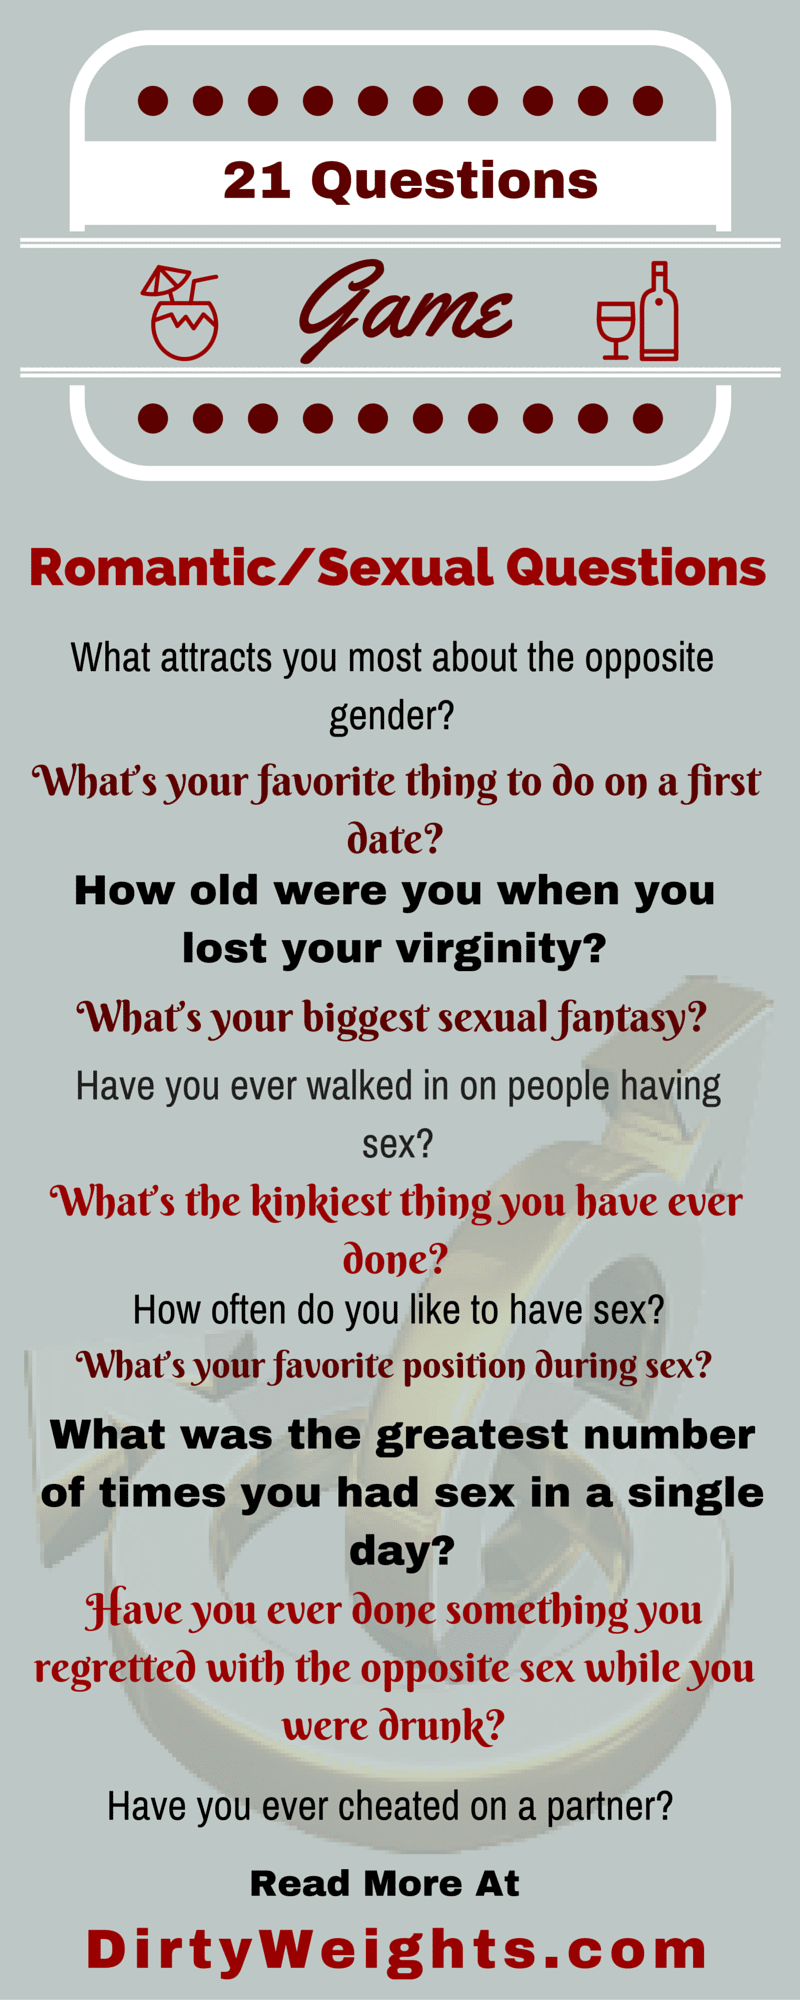 Weird sexual questions to ask photos 838